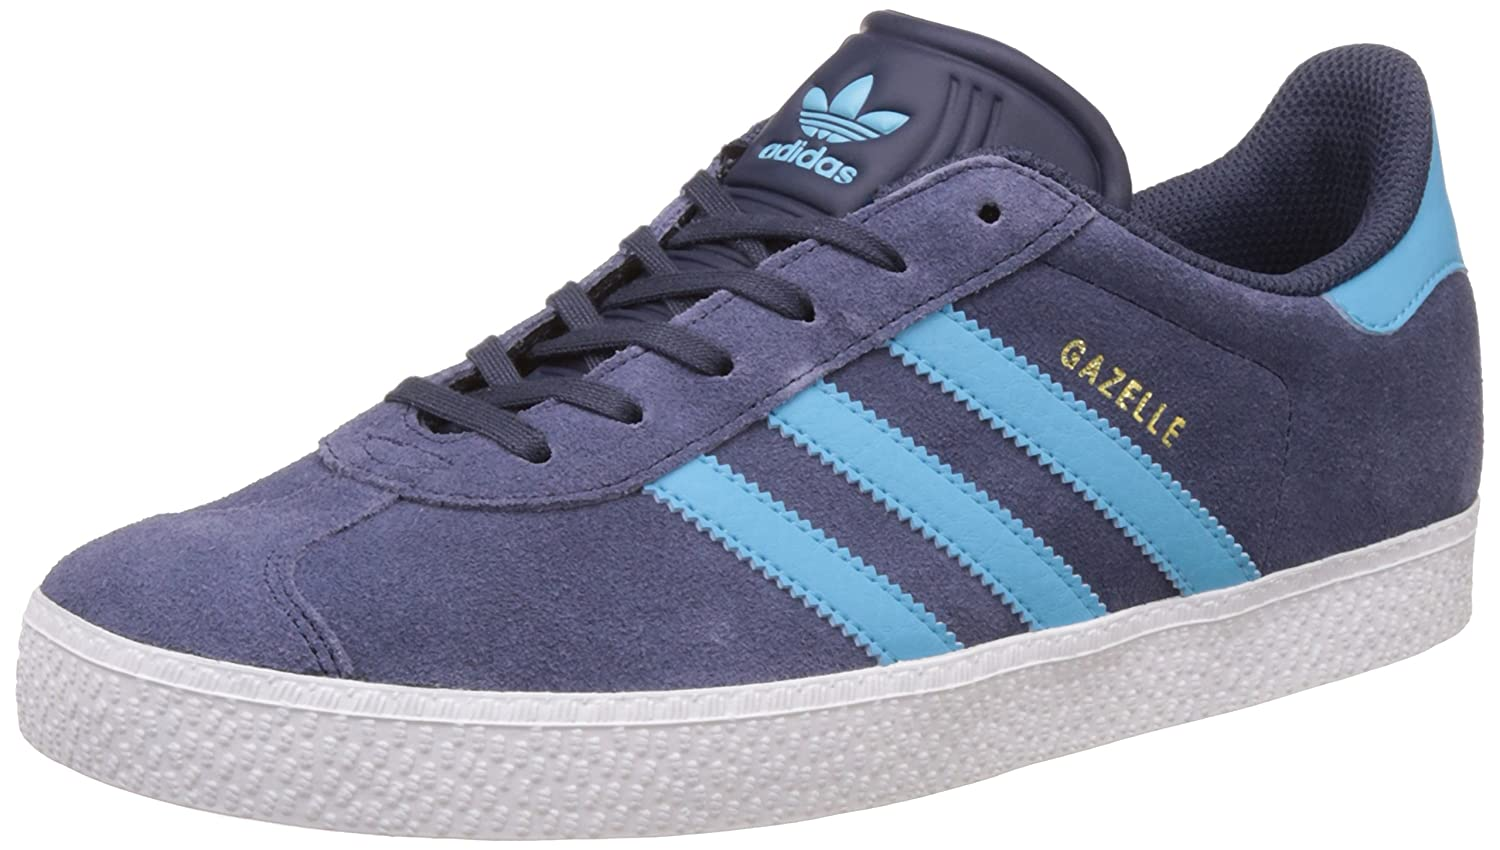 check out 31354 3ac29 adidas Gazelle Formatori Bambino  Amazon.it  Scarpe e borse